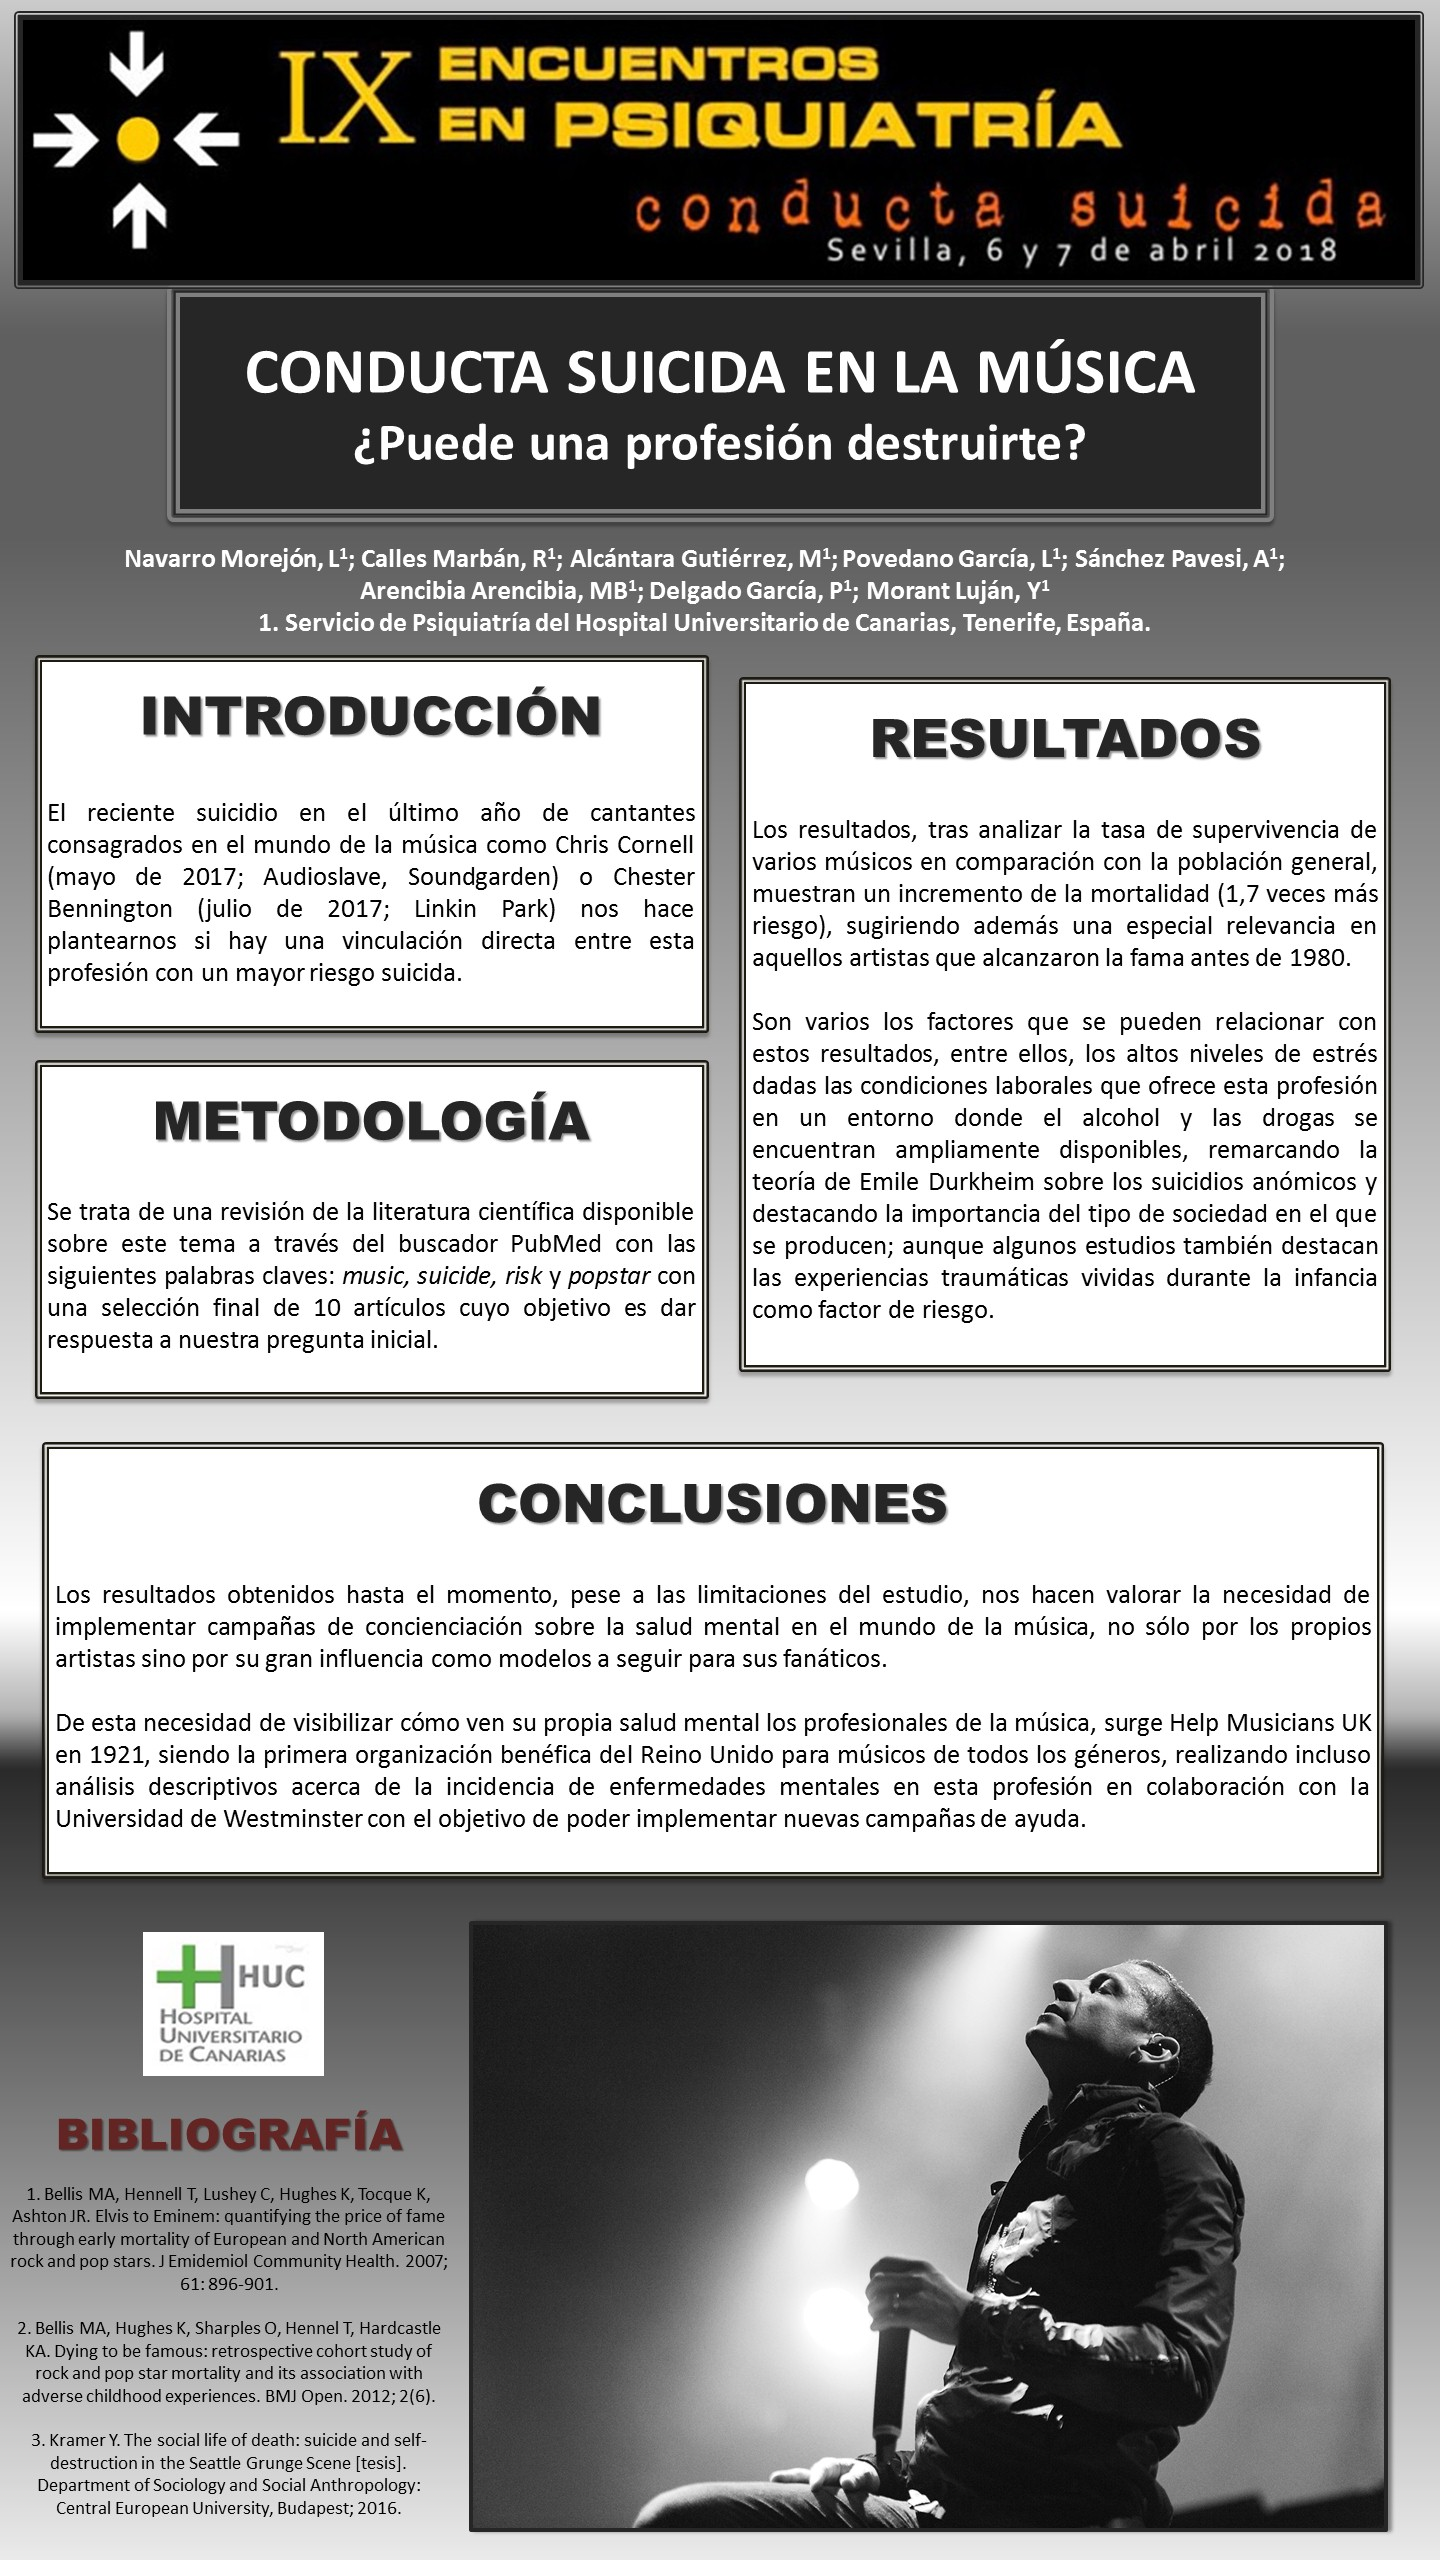 Sexual health examination videos de chistes